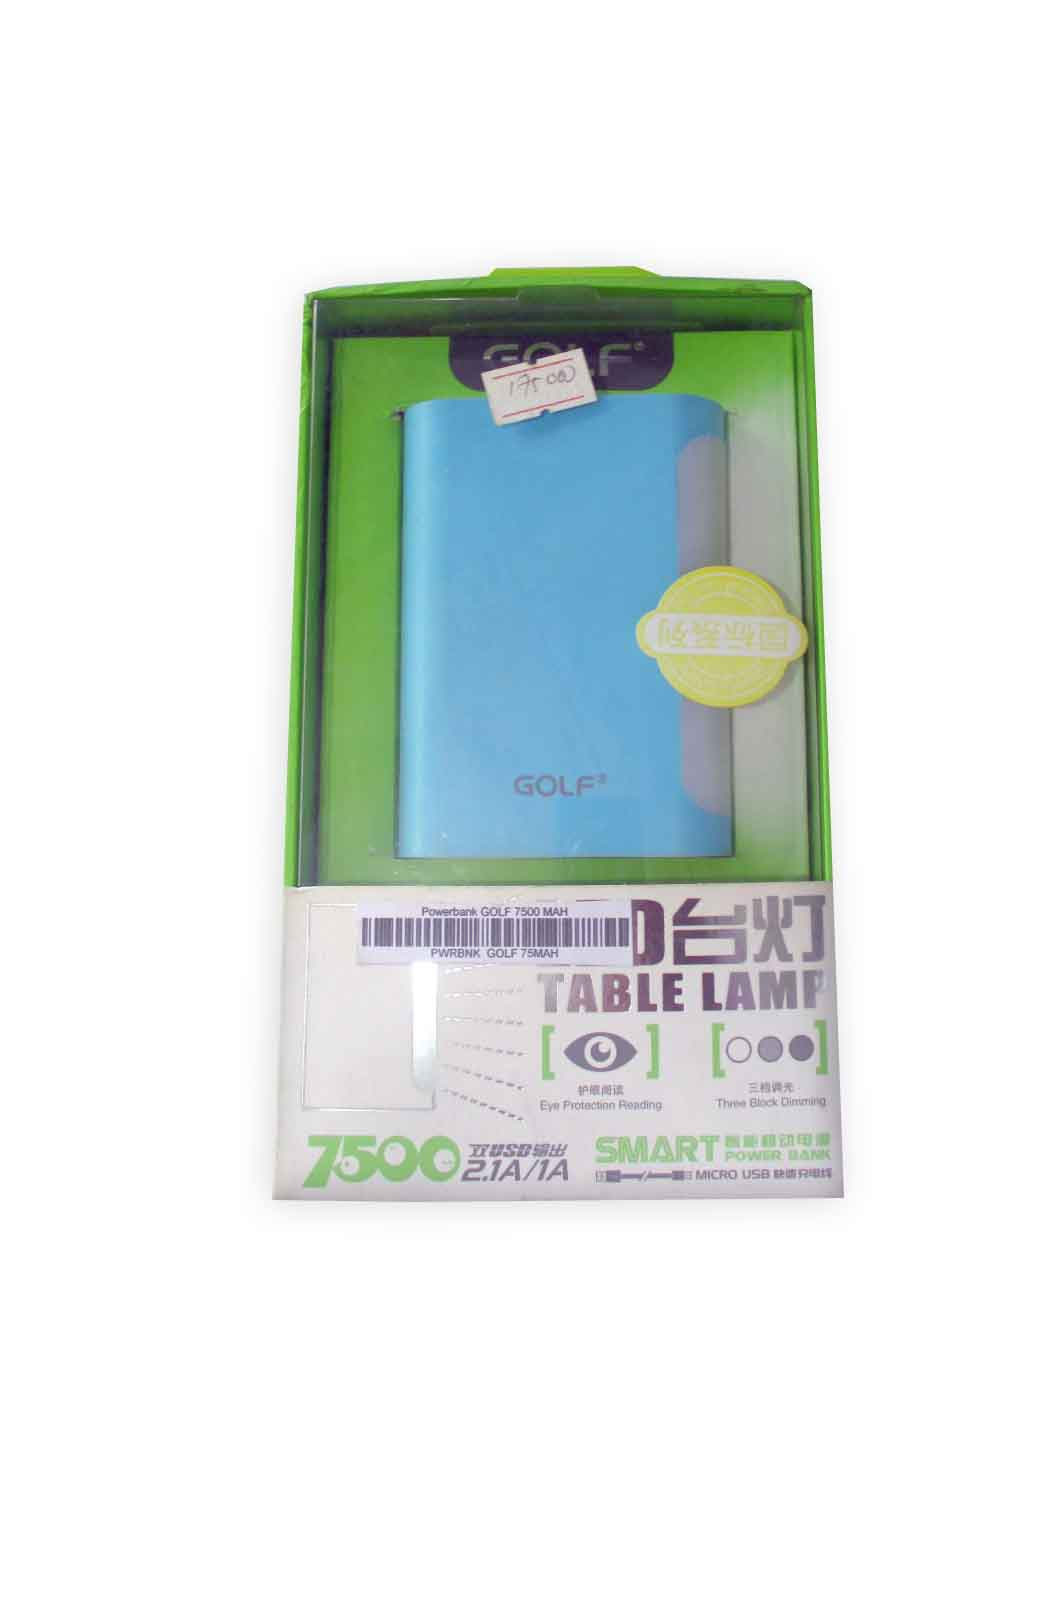 Powerbank GOLF 7500 MAH